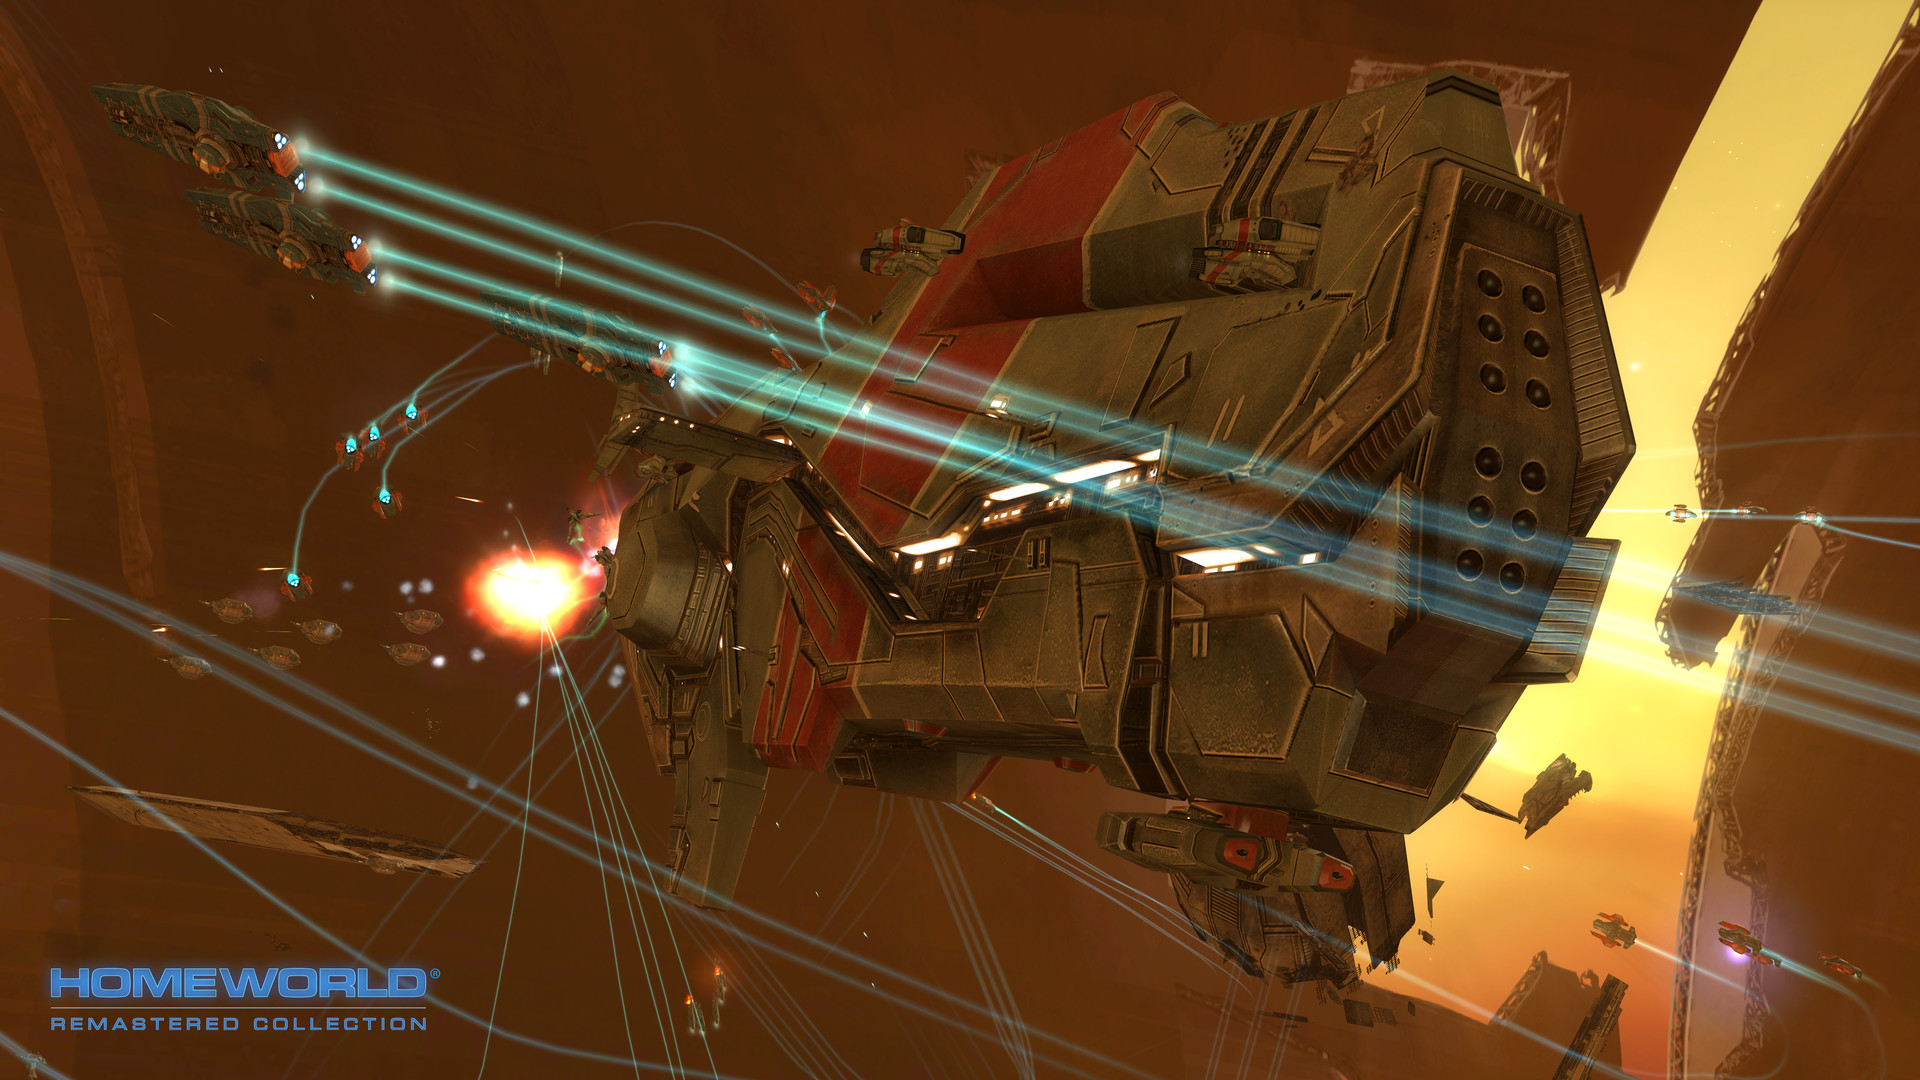 Homeworld Remastered Collection screenshot 2